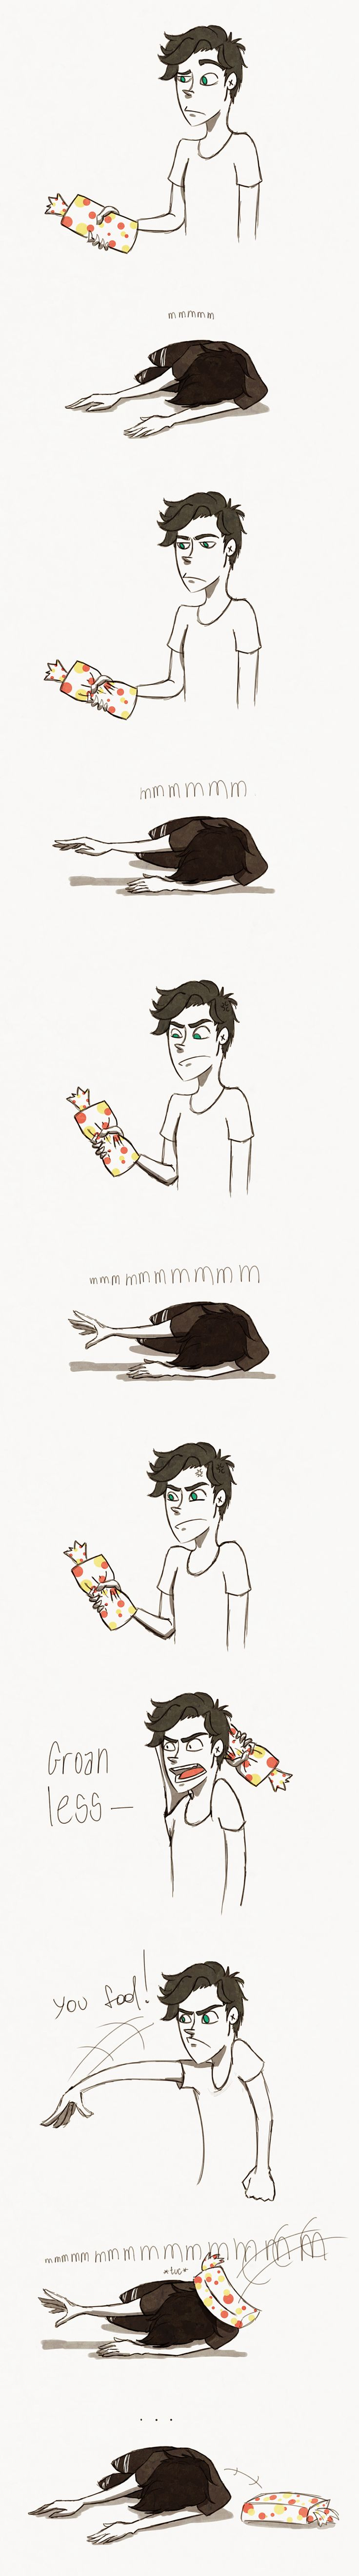 """The Wonder Bread by WanderingLola.deviantart.com on @DeviantArt   """"Nico started to crawl away, groaning. Percy wanted him to move faster and to groan less. He considered throwing his Wonder bread at him."""" -The Mark of Athena, page 513-514."""